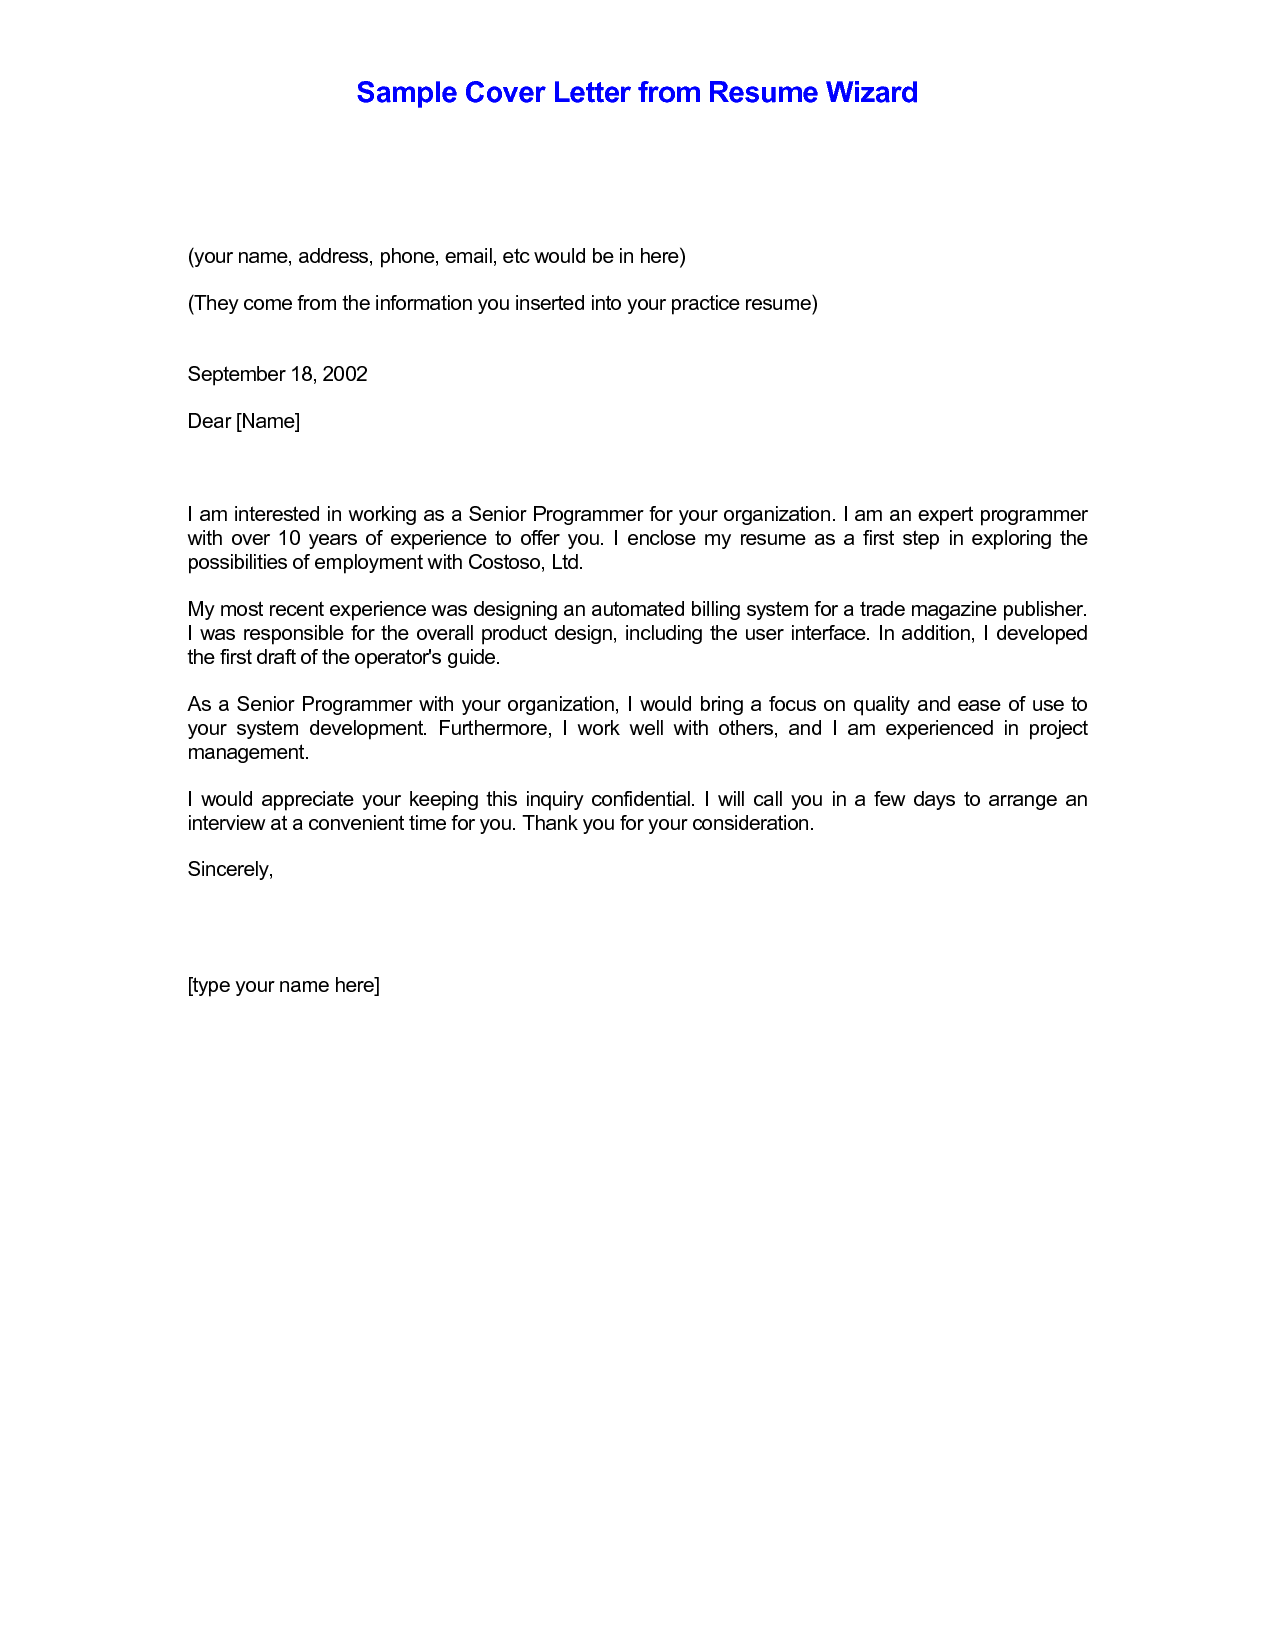 cover letter australian format also operations production cover letter example letter sample